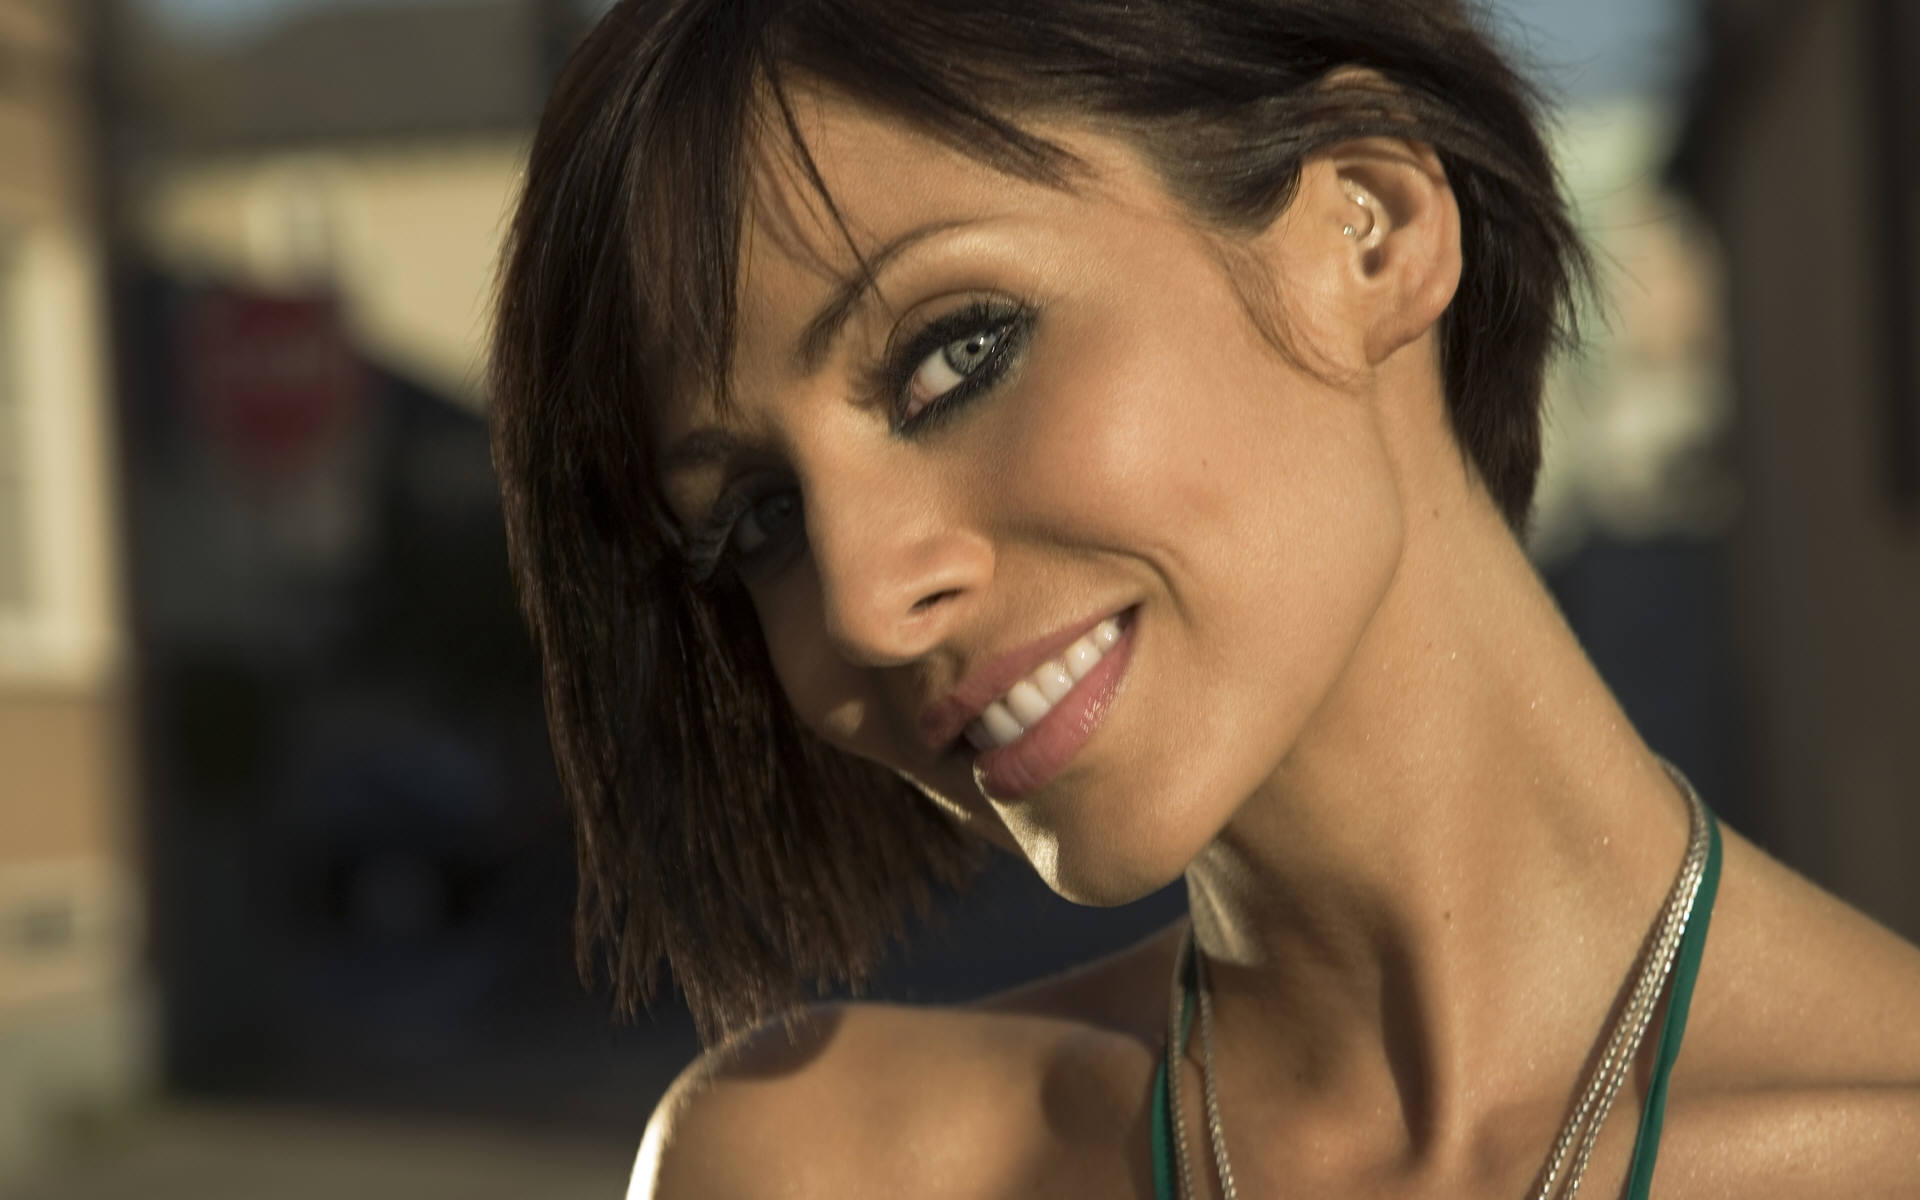 Discussion on this topic: Peter Cullen, natalie-imbruglia/